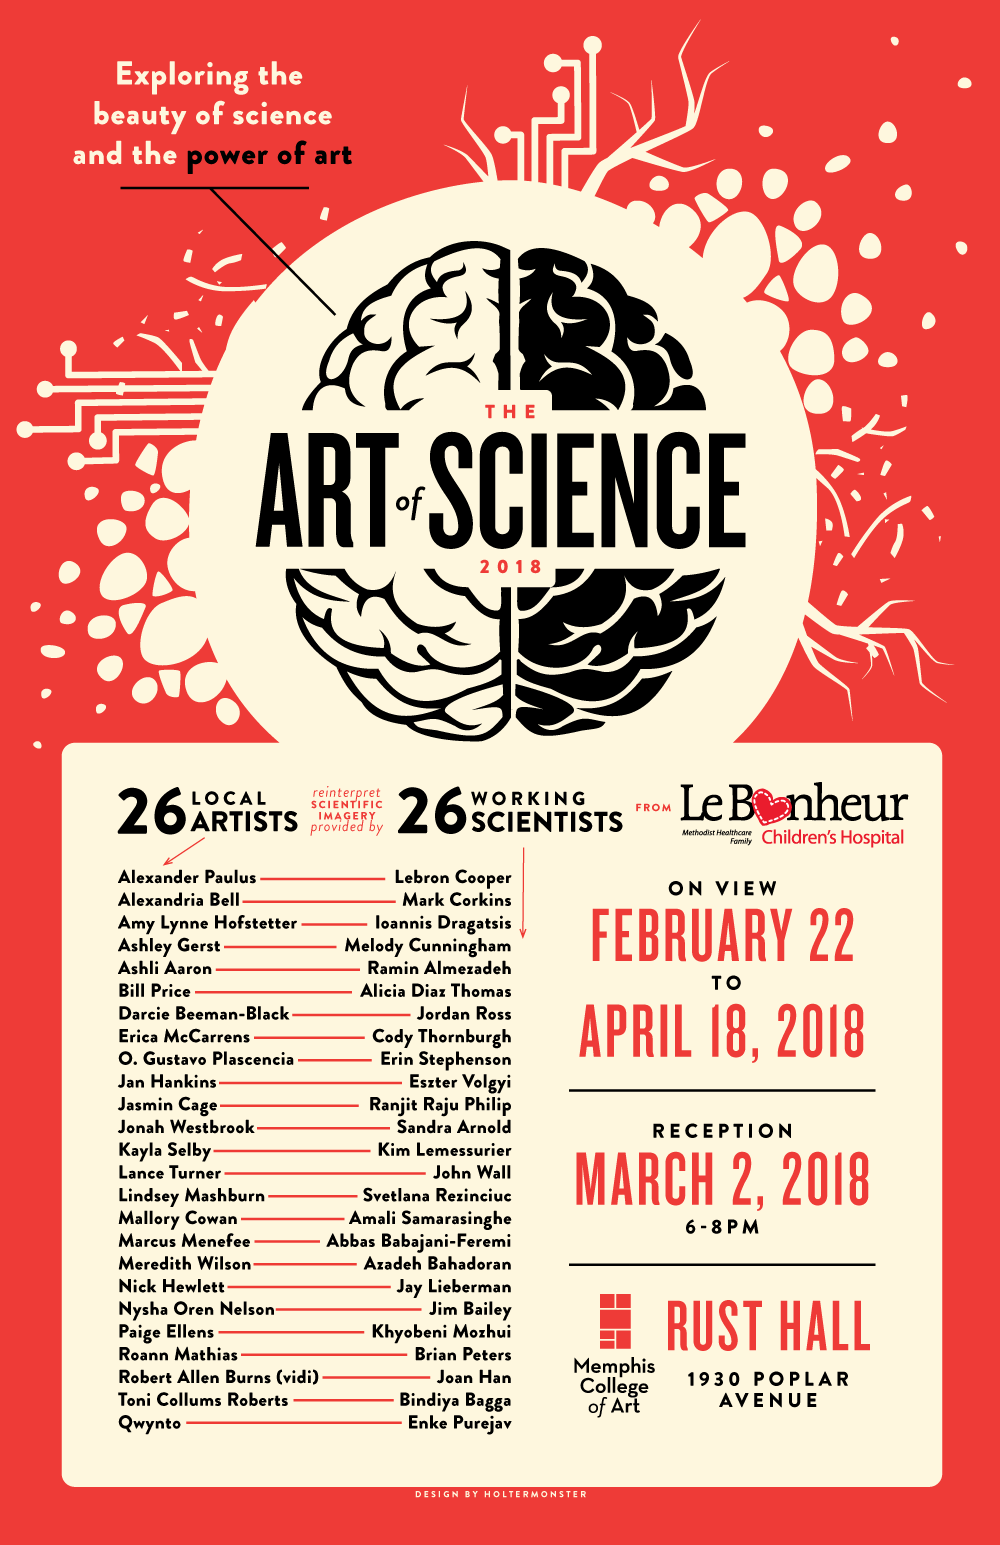 Art of Science 2018